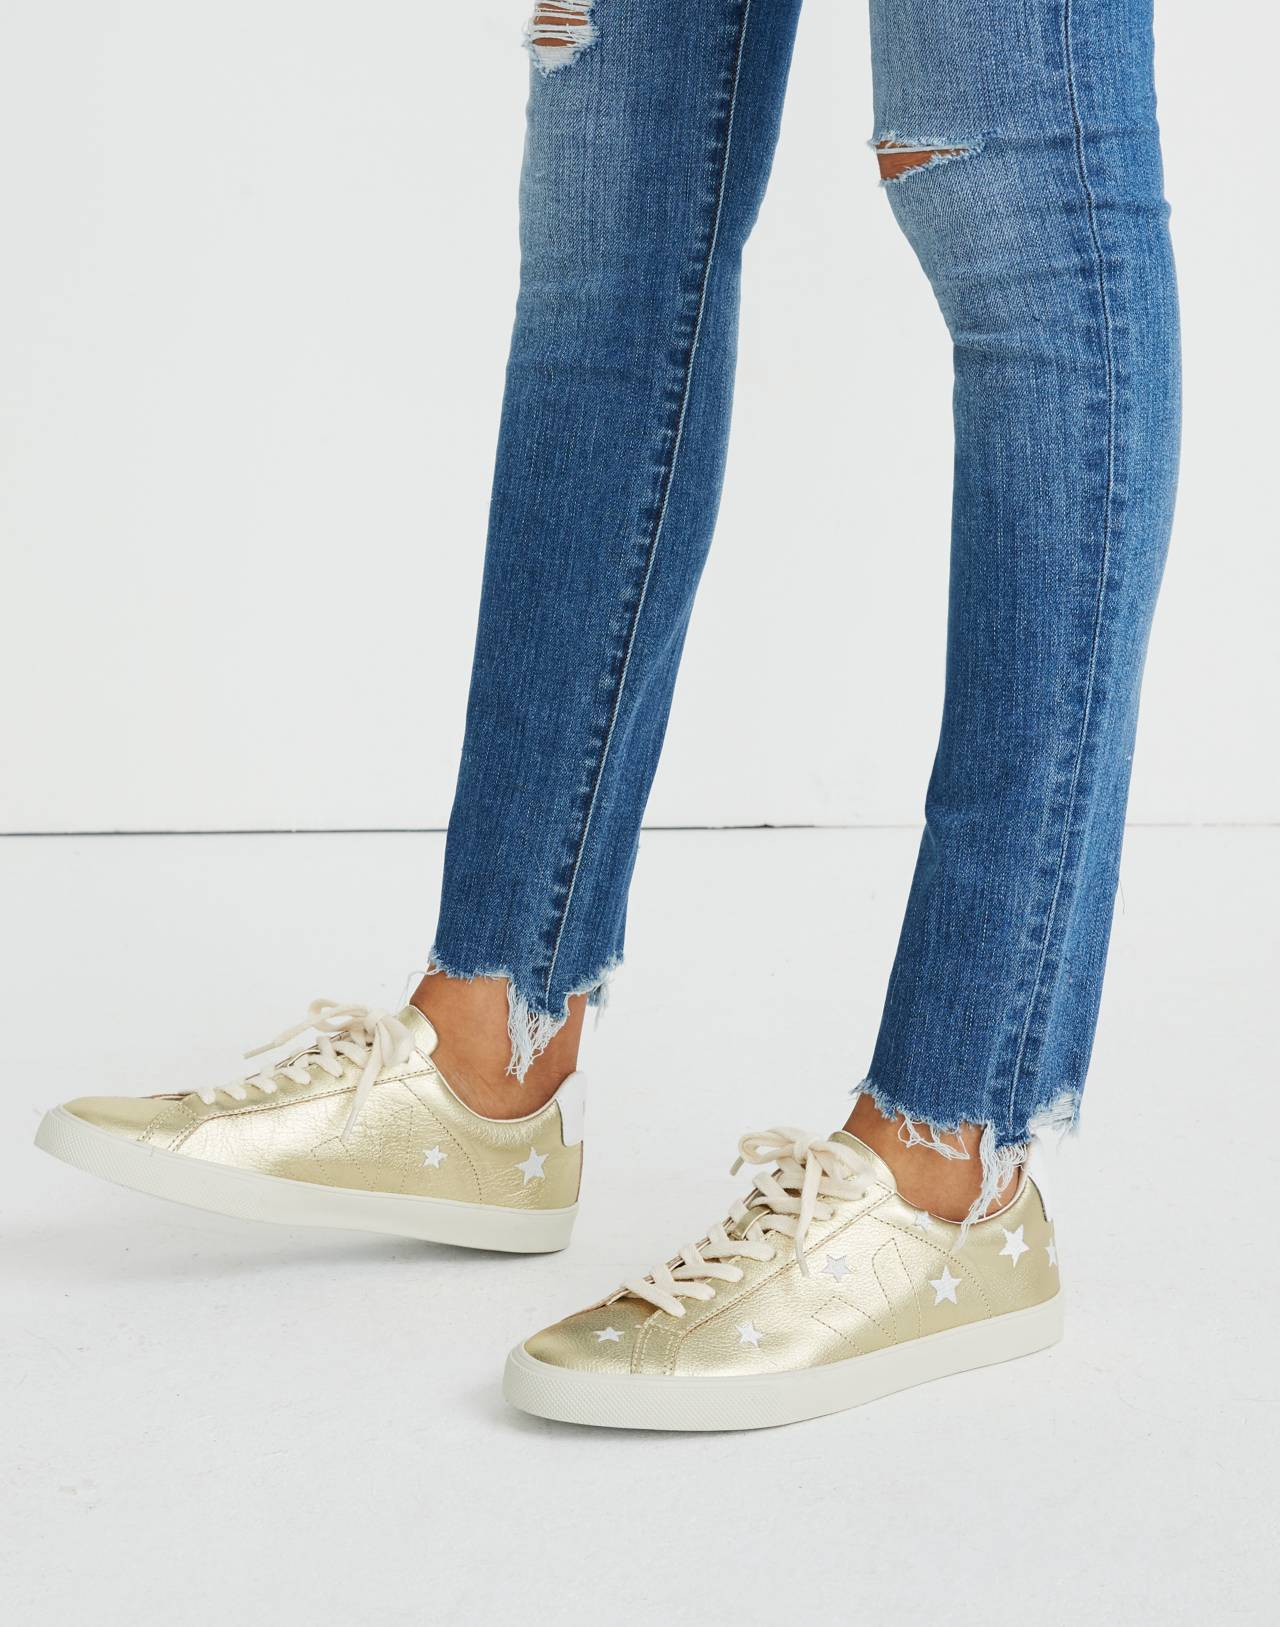 Madewell x Veja™ Esplar Low Sneakers in Star-Embroidered Gold Leather in gold white image 2